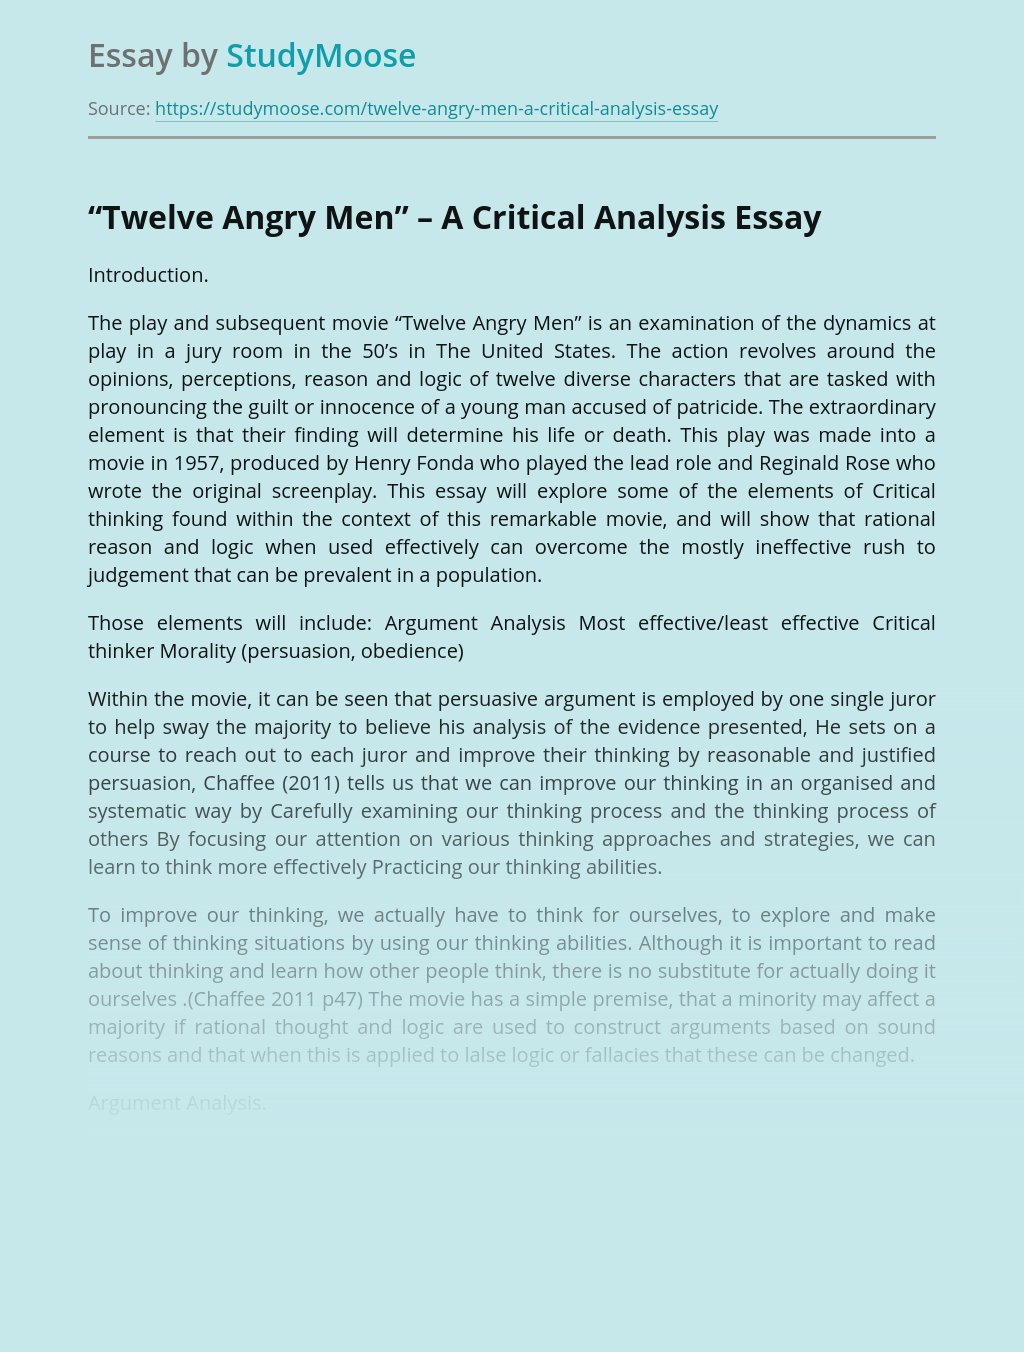 Critical Analysis of Twelve Angry Men Movie